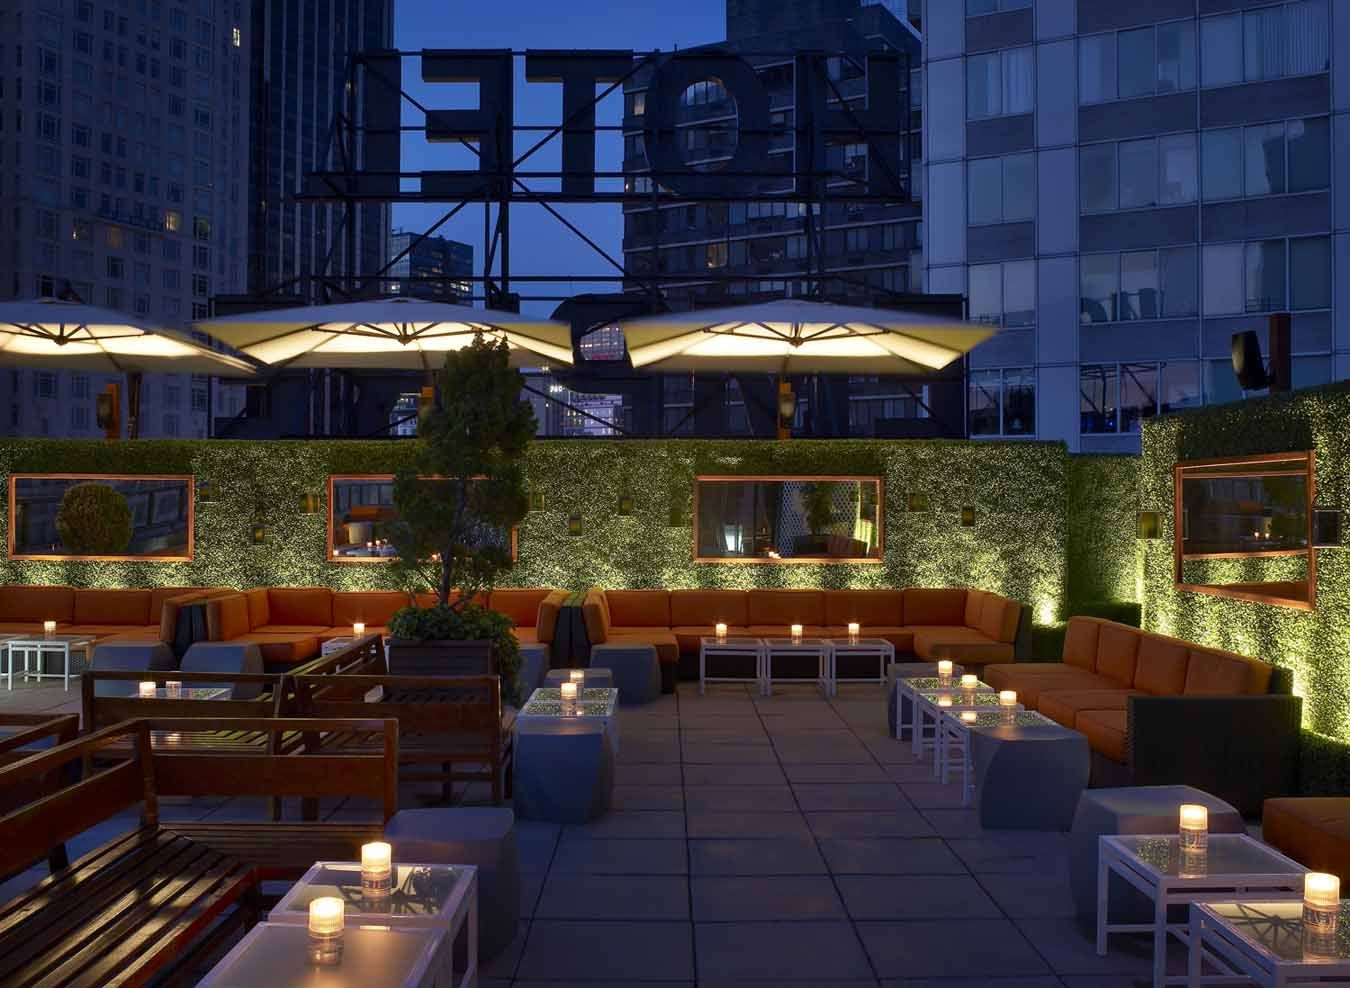 Empire Hotel Rooftop NYC They Have Free Drinks With Overtime - The 12 best rooftop bars and patios in canada